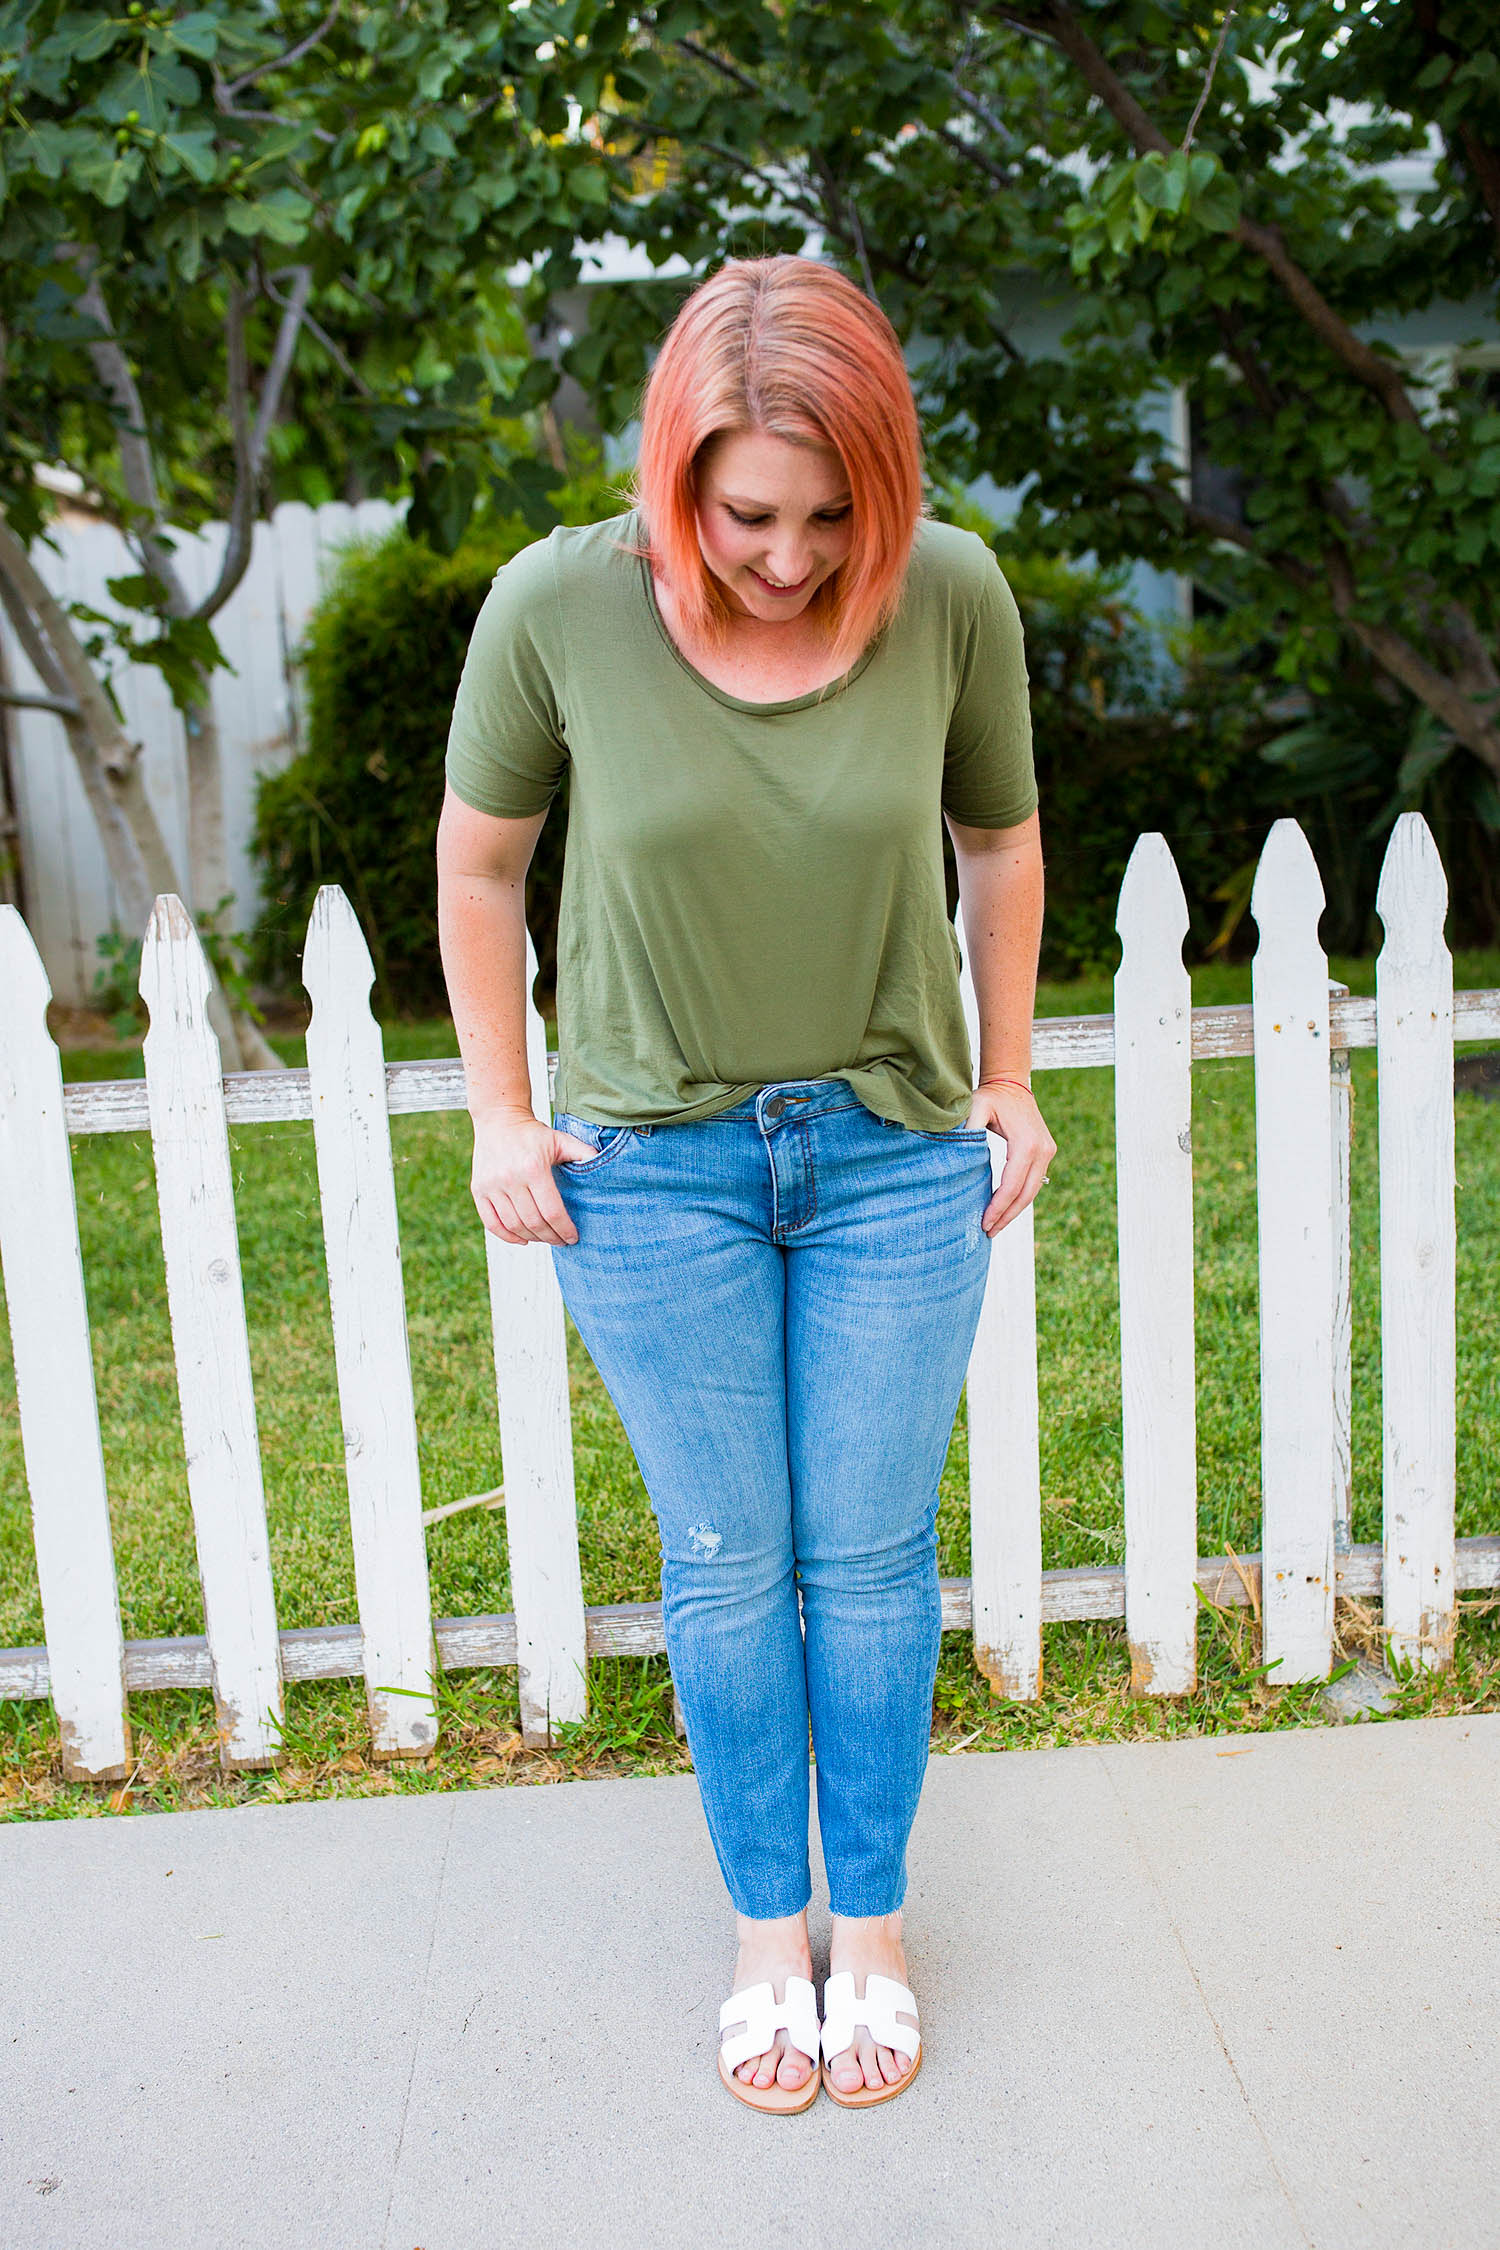 Nordstrom Anniversary Sale 2018: Fall outfits time is HERE, and these Kut from the Kloth jeans are a GREAT price!